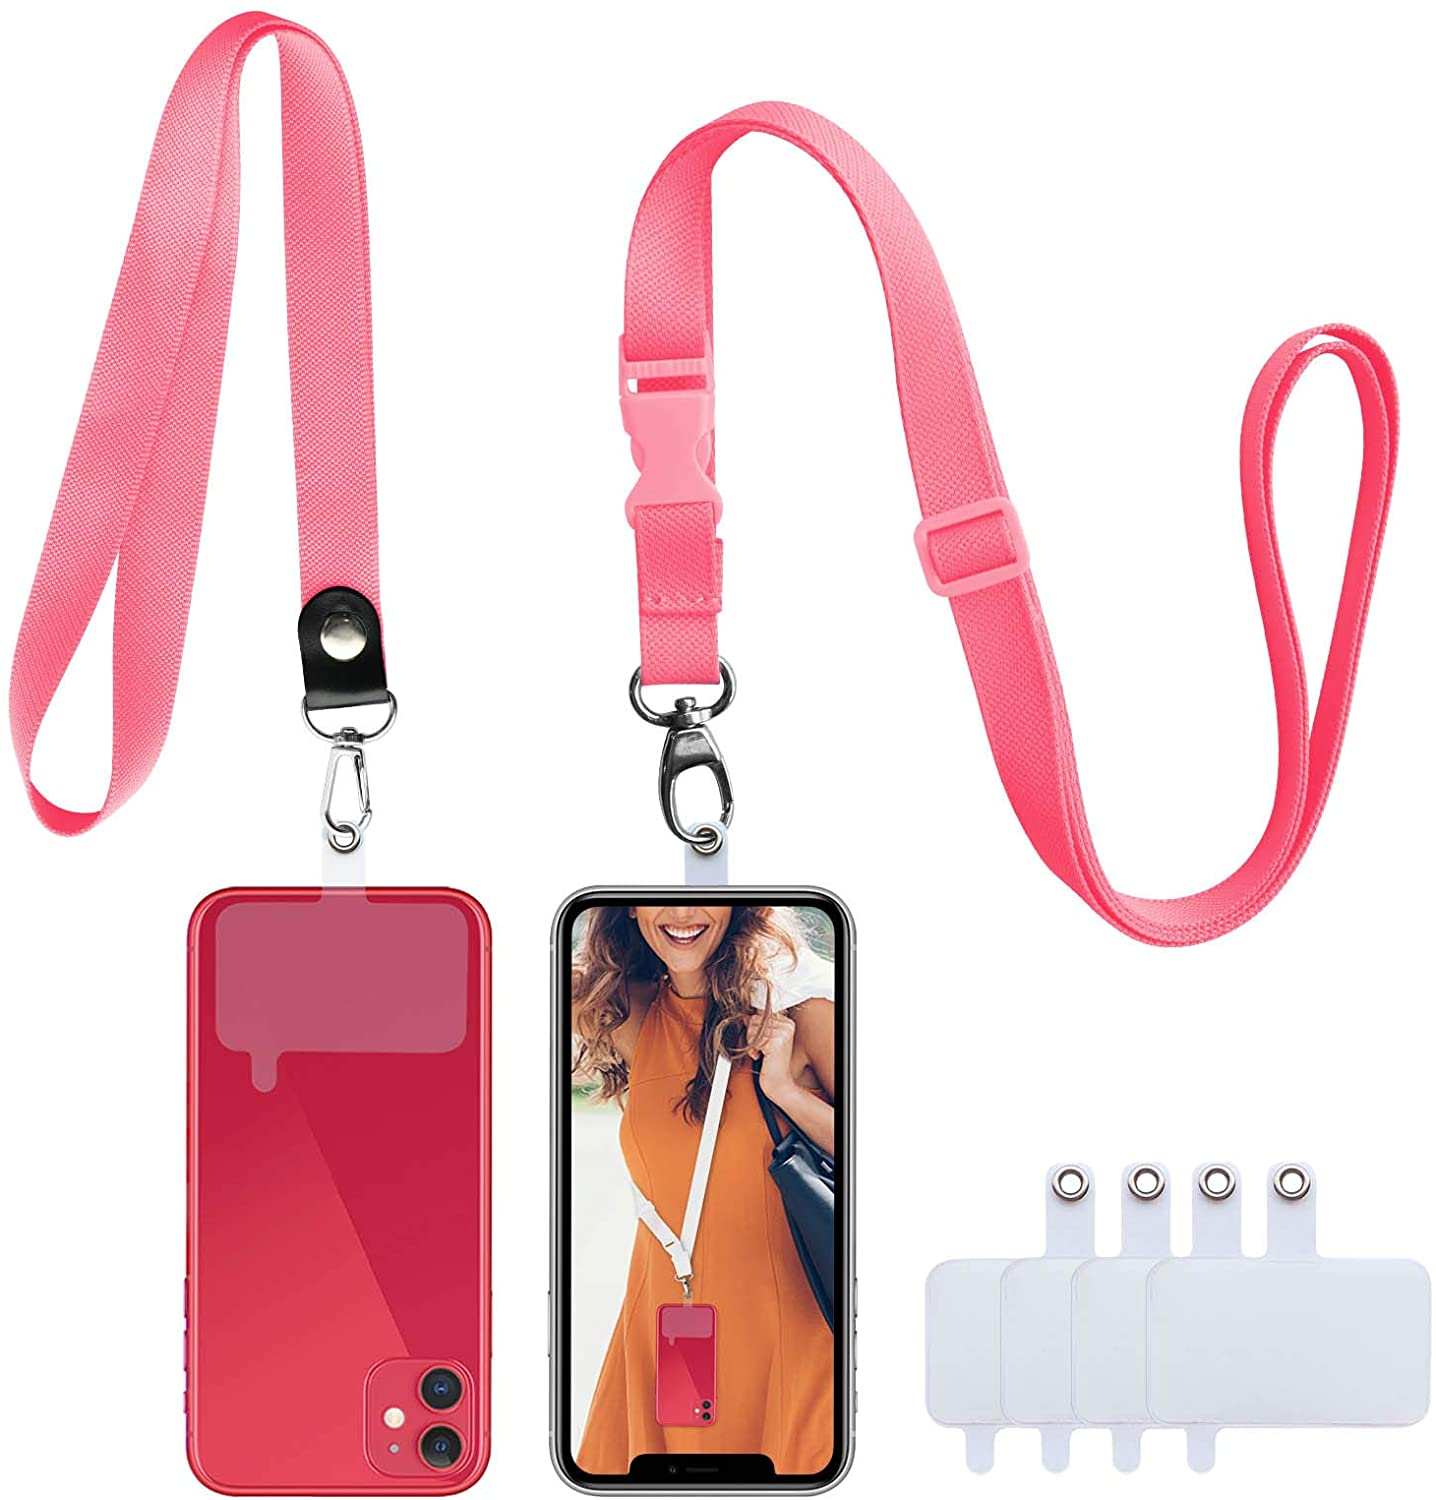 ROCONTRIP Phone Lanyard Universal Crossbody Shoulder Cell Phone Lanyard and Neck Around Strap Set 2 Pcs Lanyards with 4 PVC Patchs Compatible with iPhone Samsung & Most Smartphones (Pink)